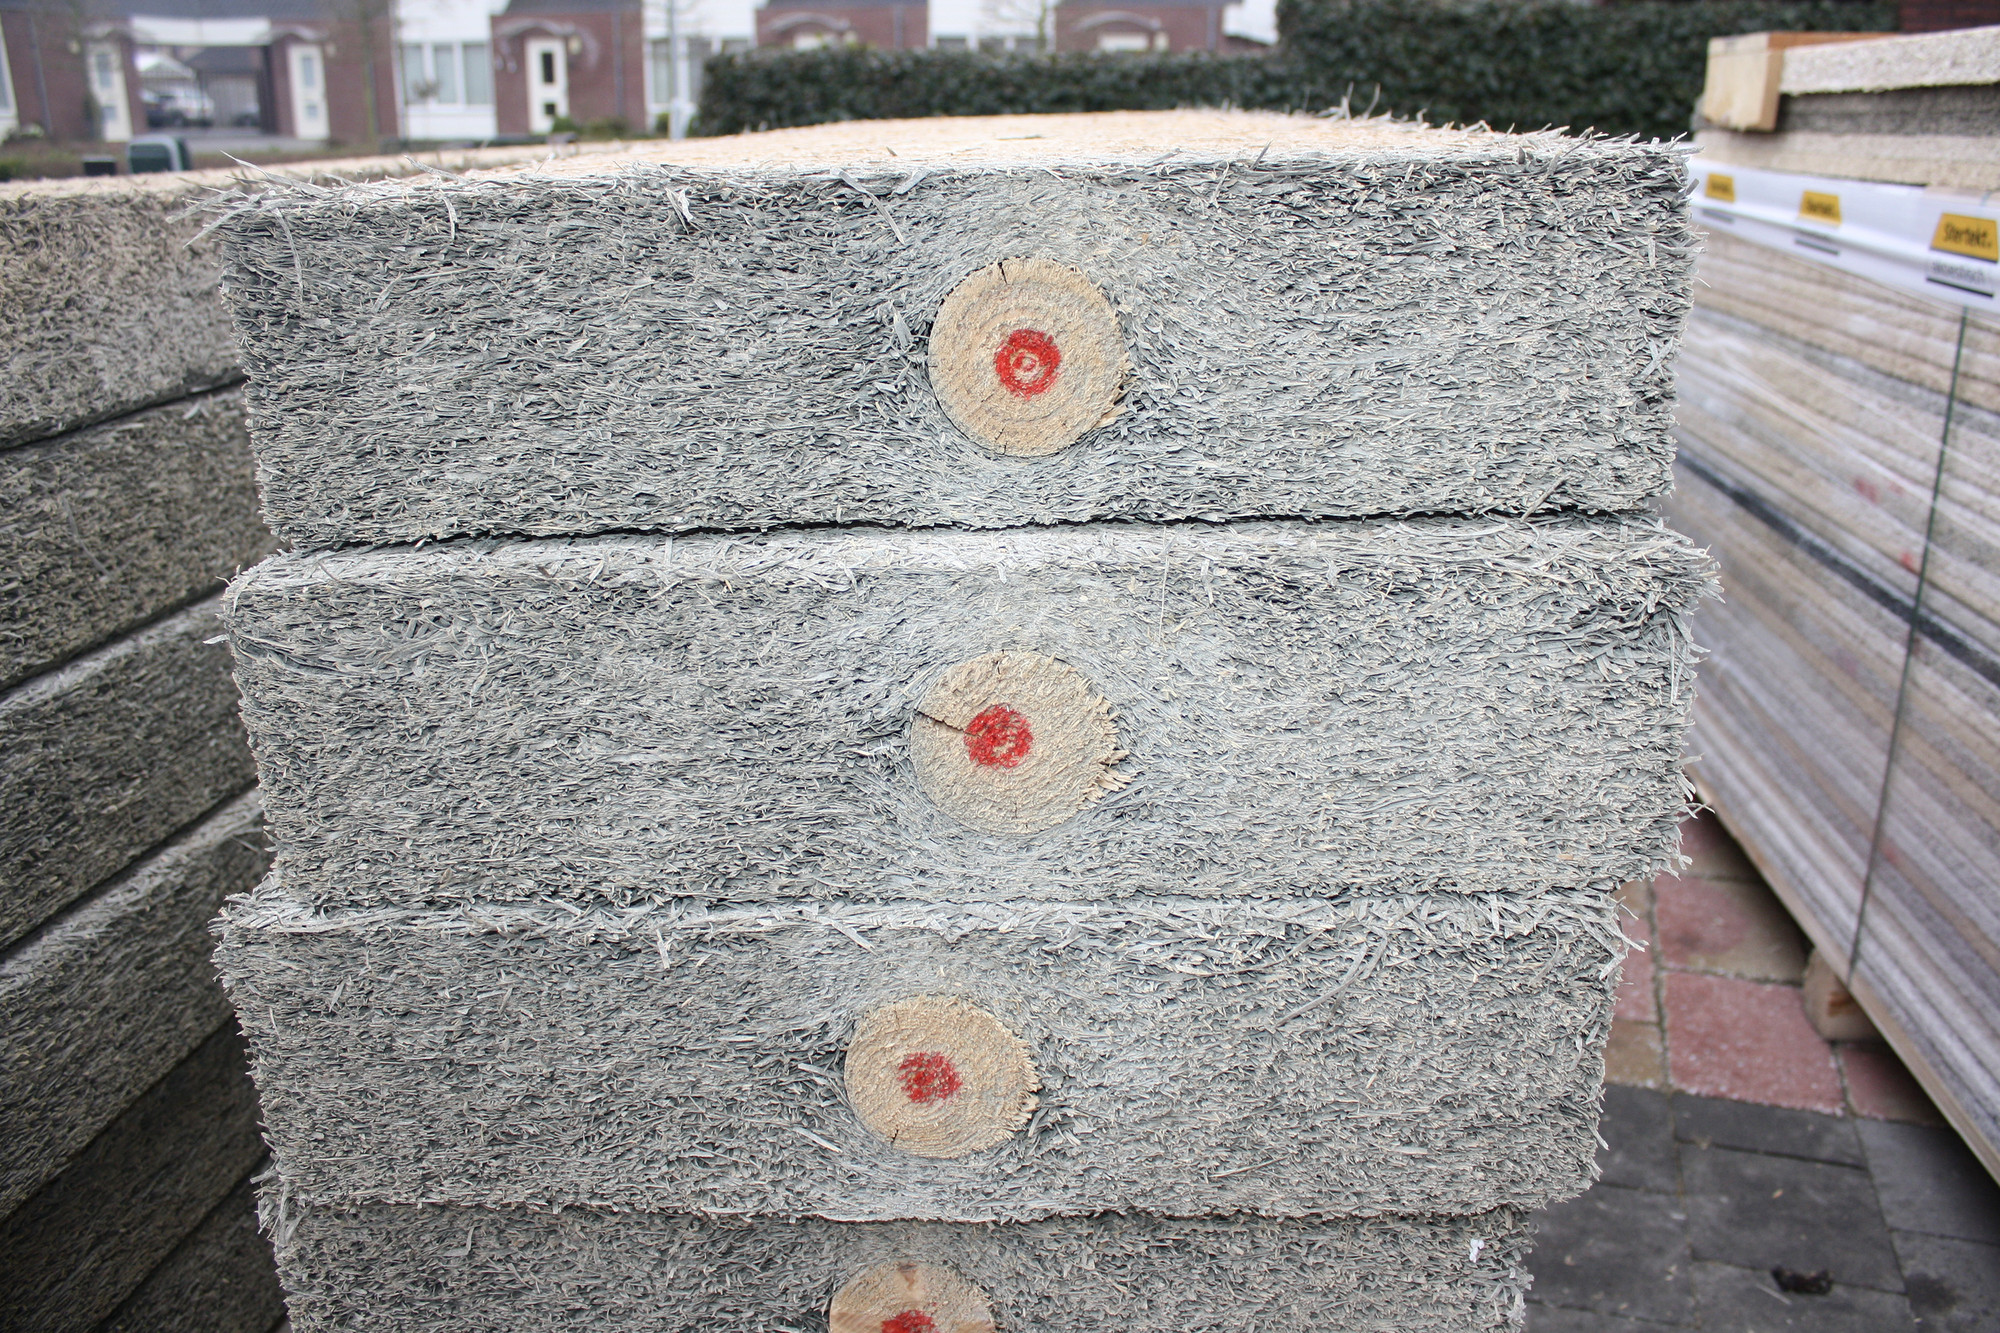 Reinforced Wood Wool Cement Board. Image Courtesy of Dutch Design Initiative via Cradle to Cradle